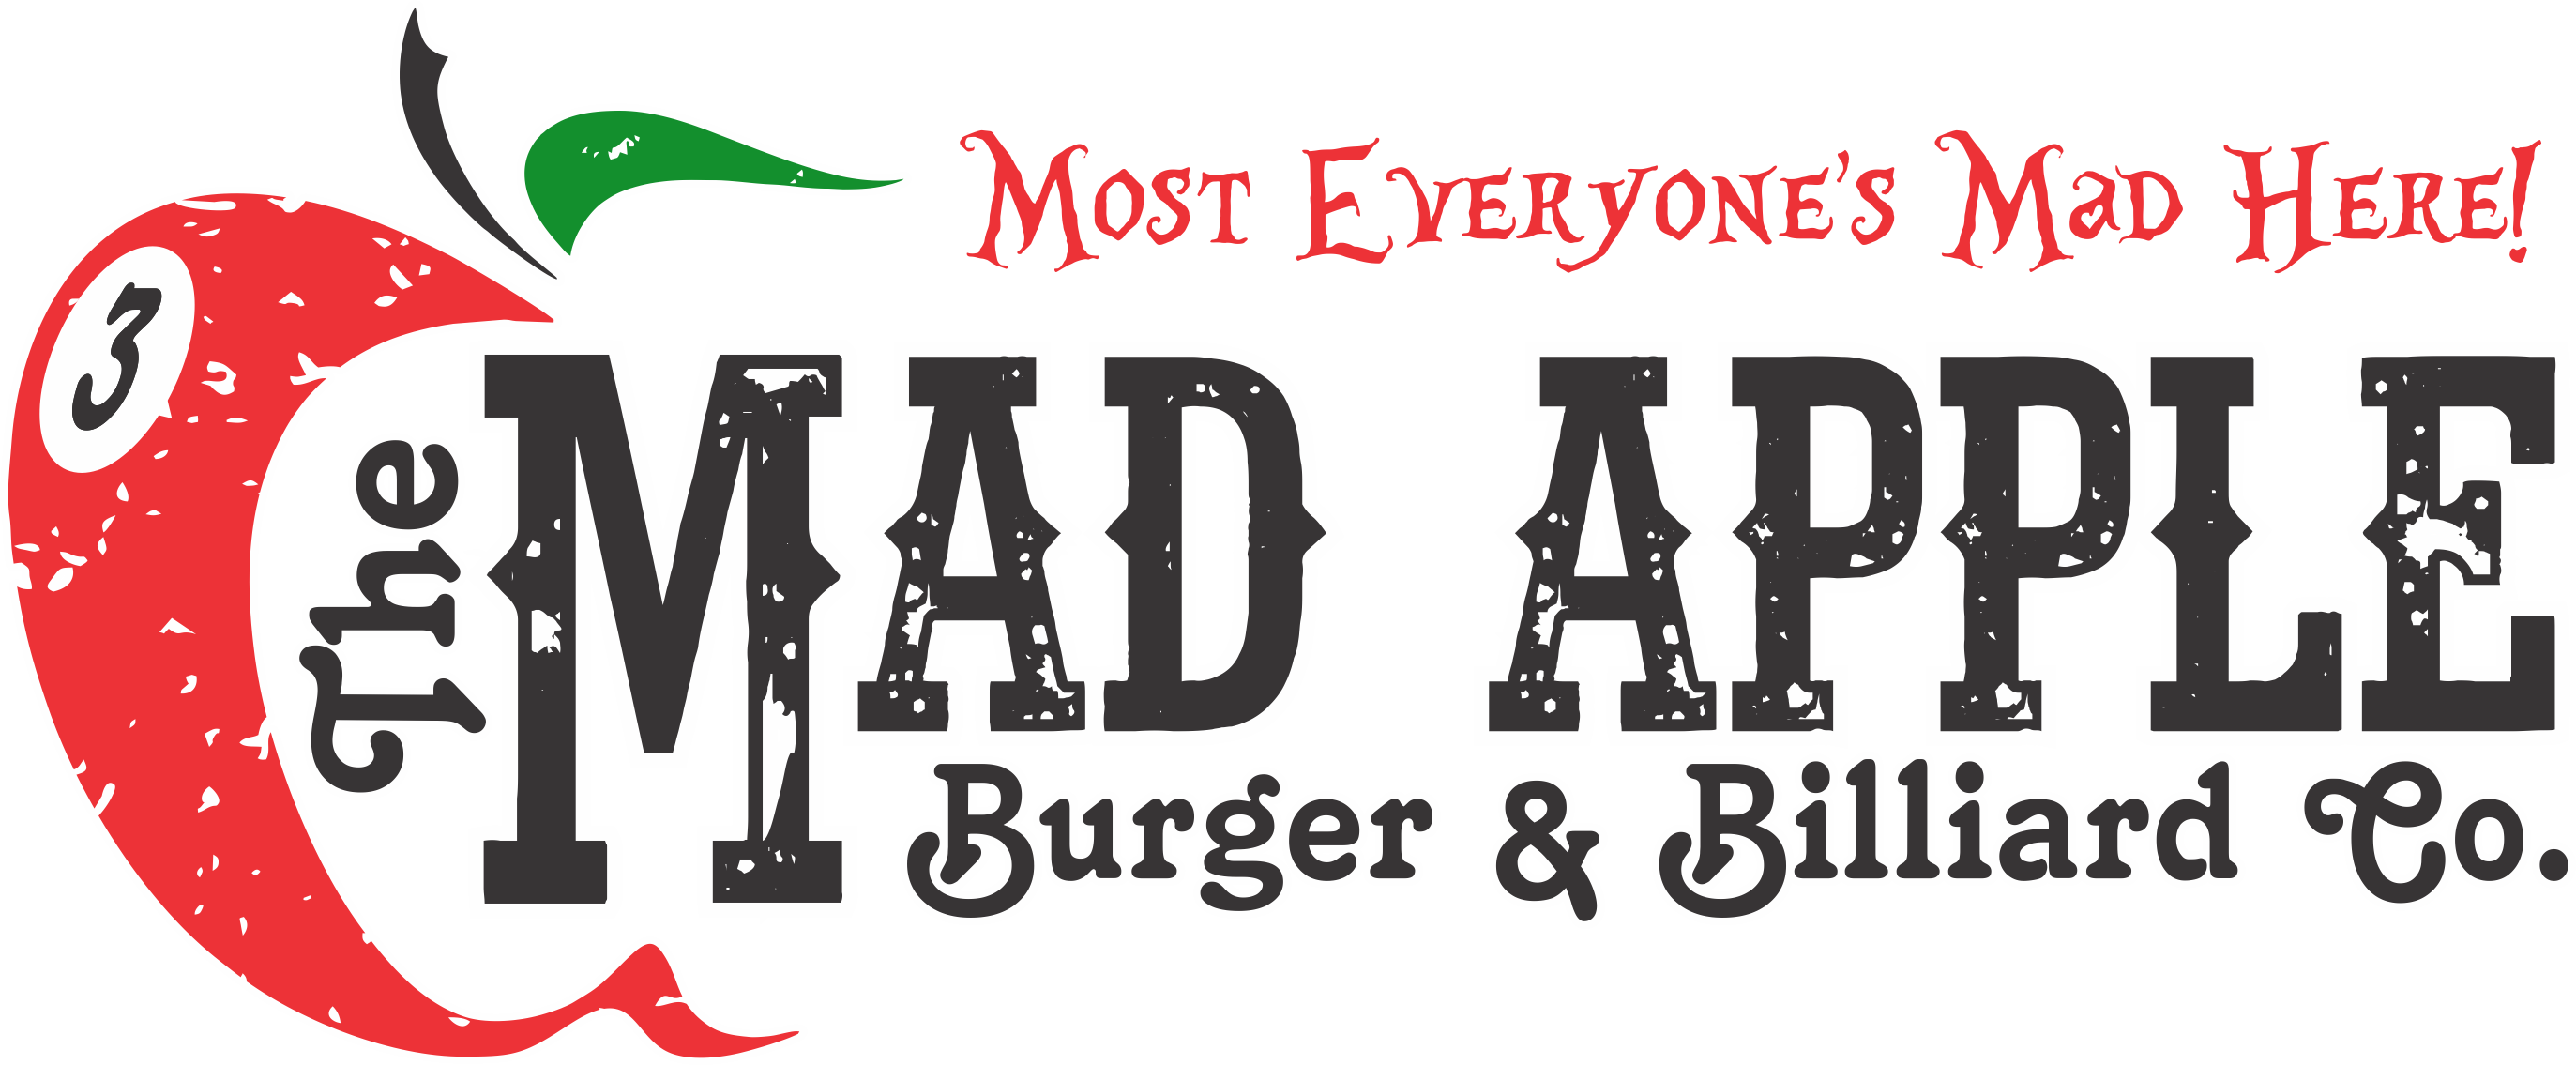 The Mad Apple Burger & Billiard Co  Restaurant & Pool Hall